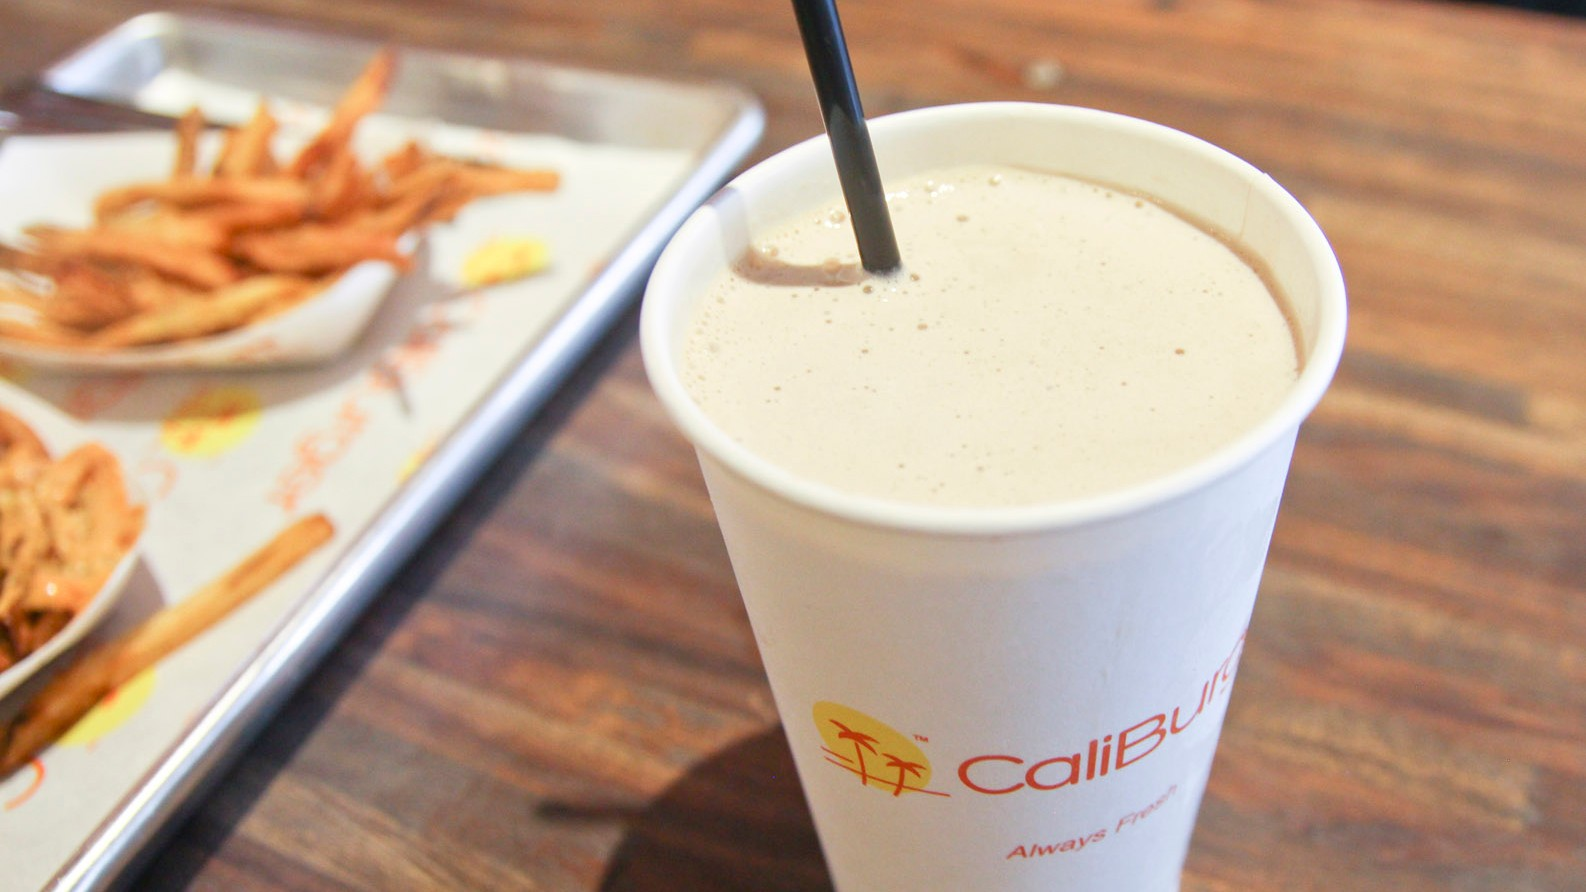 caliburger_ChocoBourbonShake